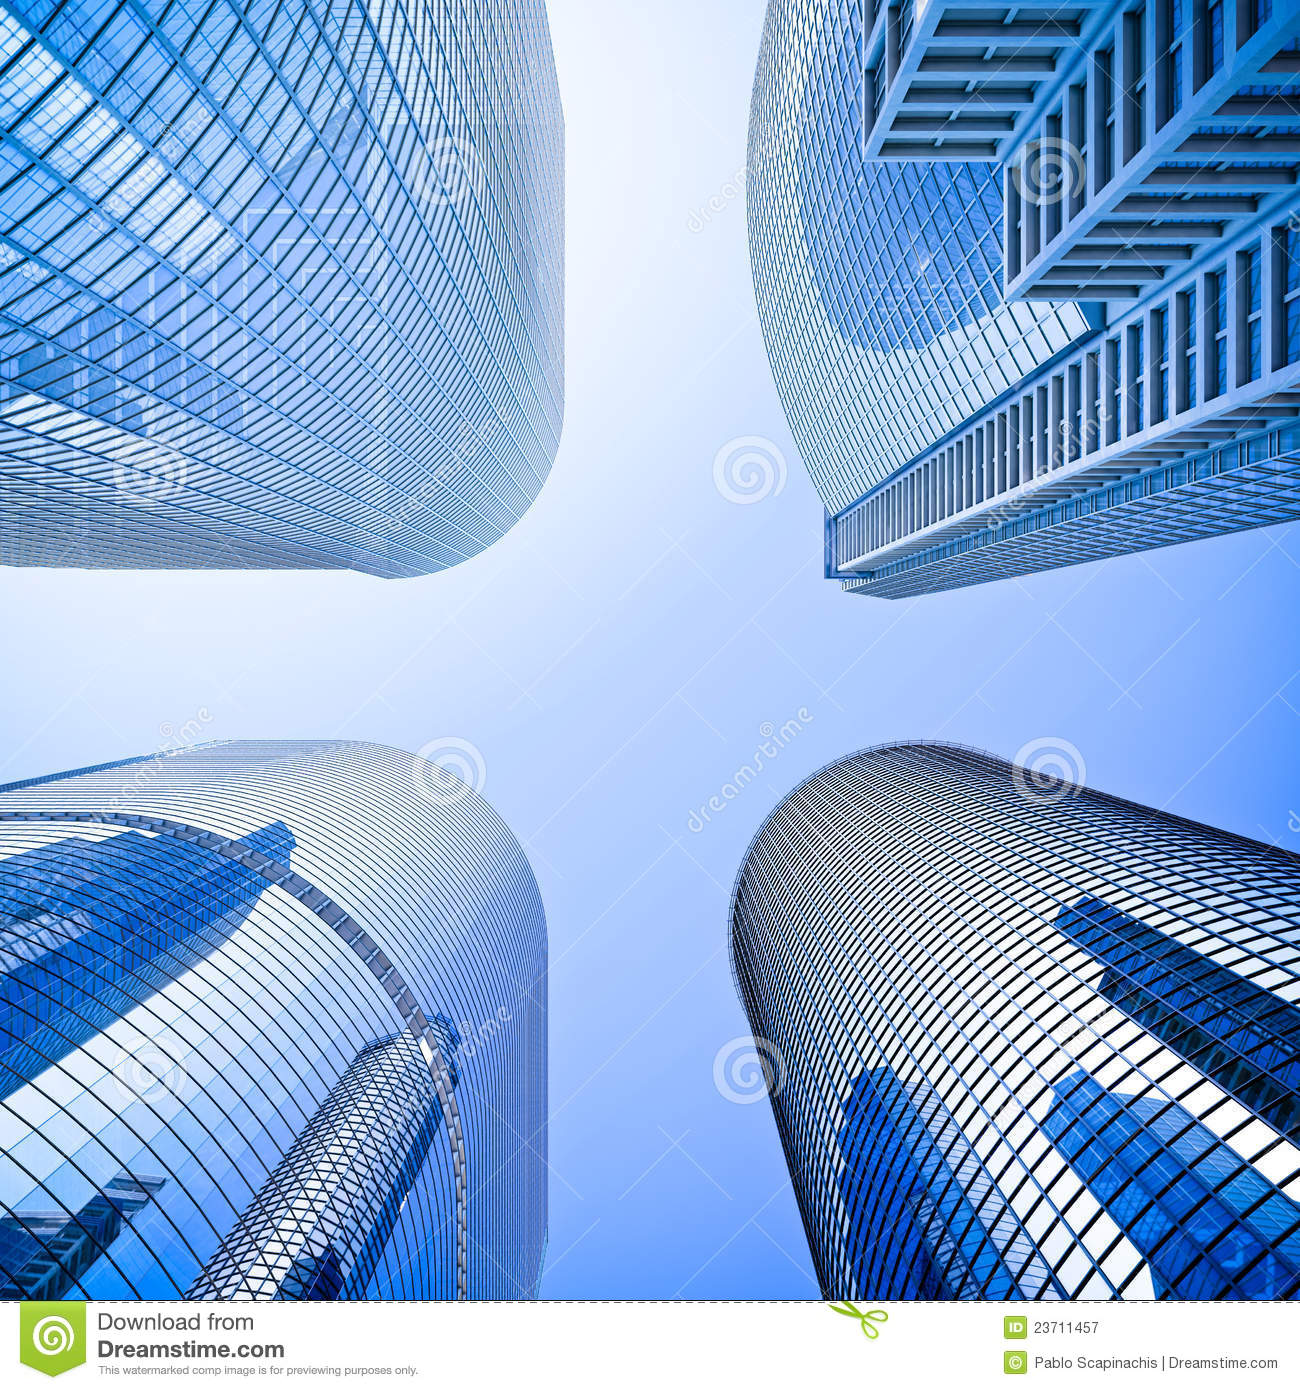 Blue Highrise Glass Skyscraper Intersection Low Angle Shot: Highrise Intersection Low Angle Shot Royalty Free Stock